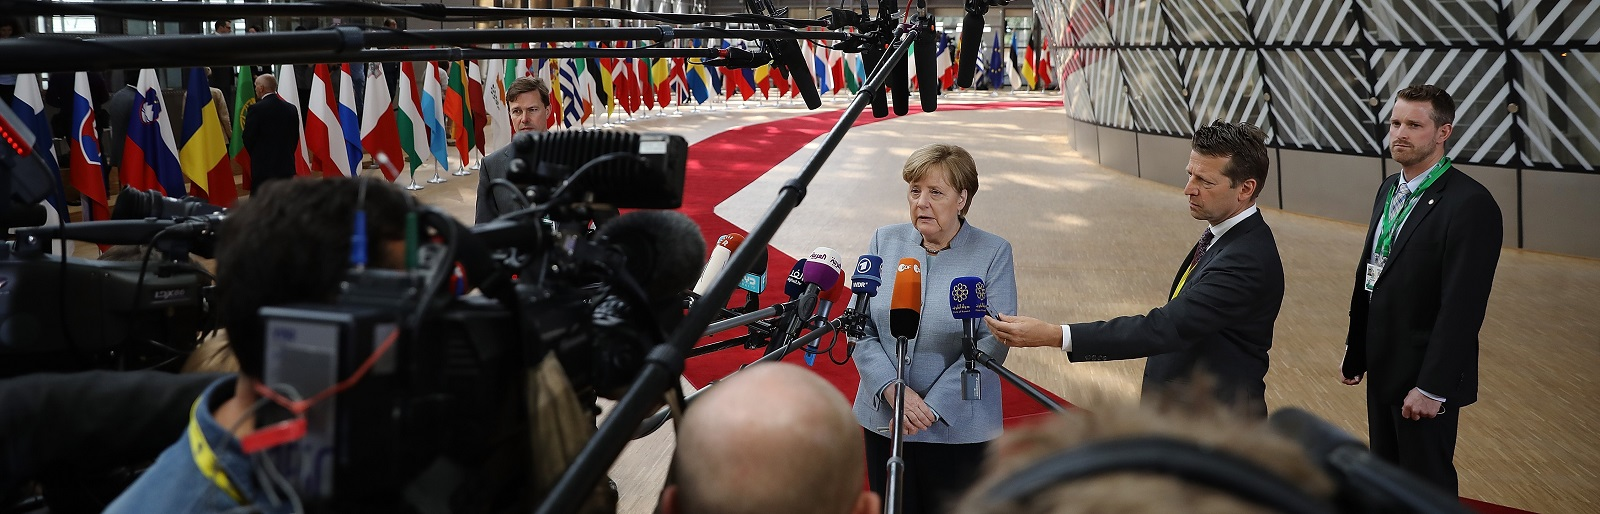 Angela Merkel speaks to the media ahead of an EU Council meeting in Brussels in April. (Photo: Dan Kitwood/Getty Images)